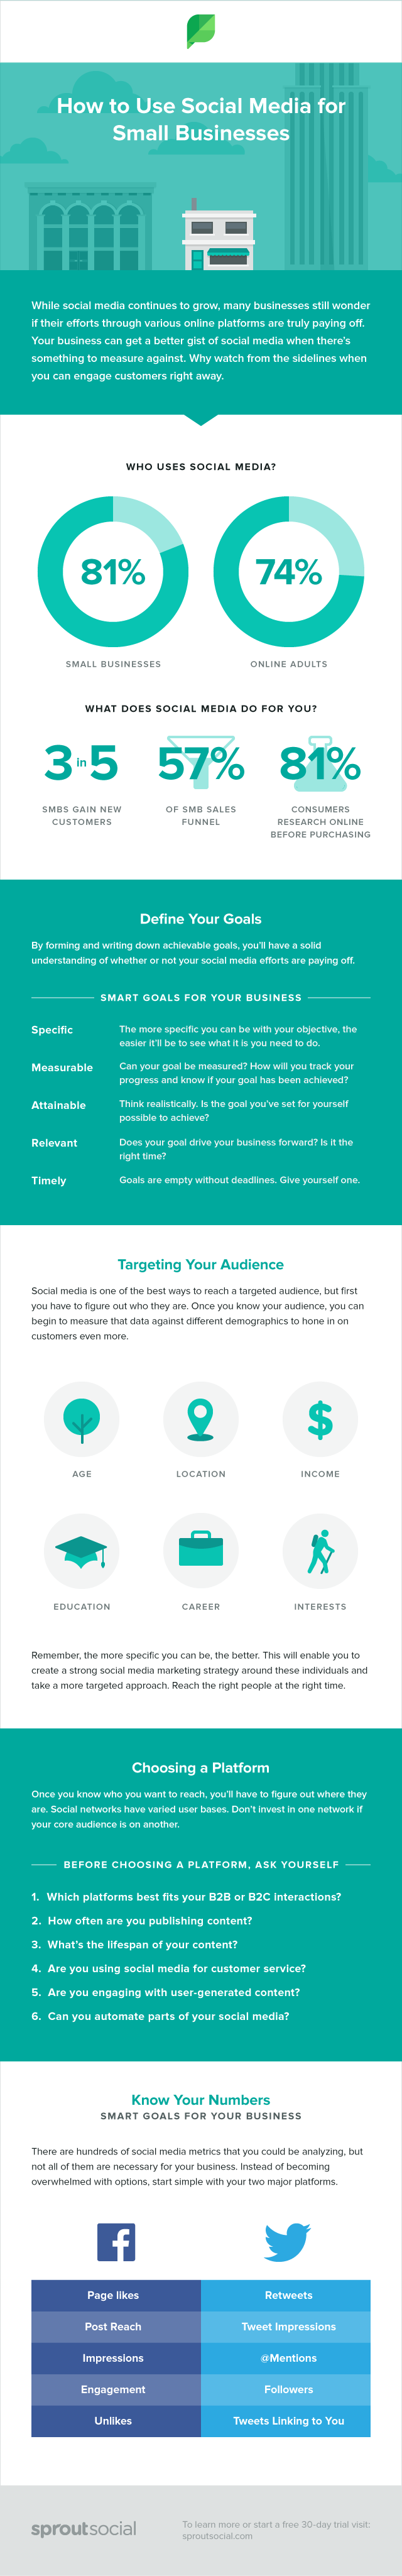 how to use social for small business infographic